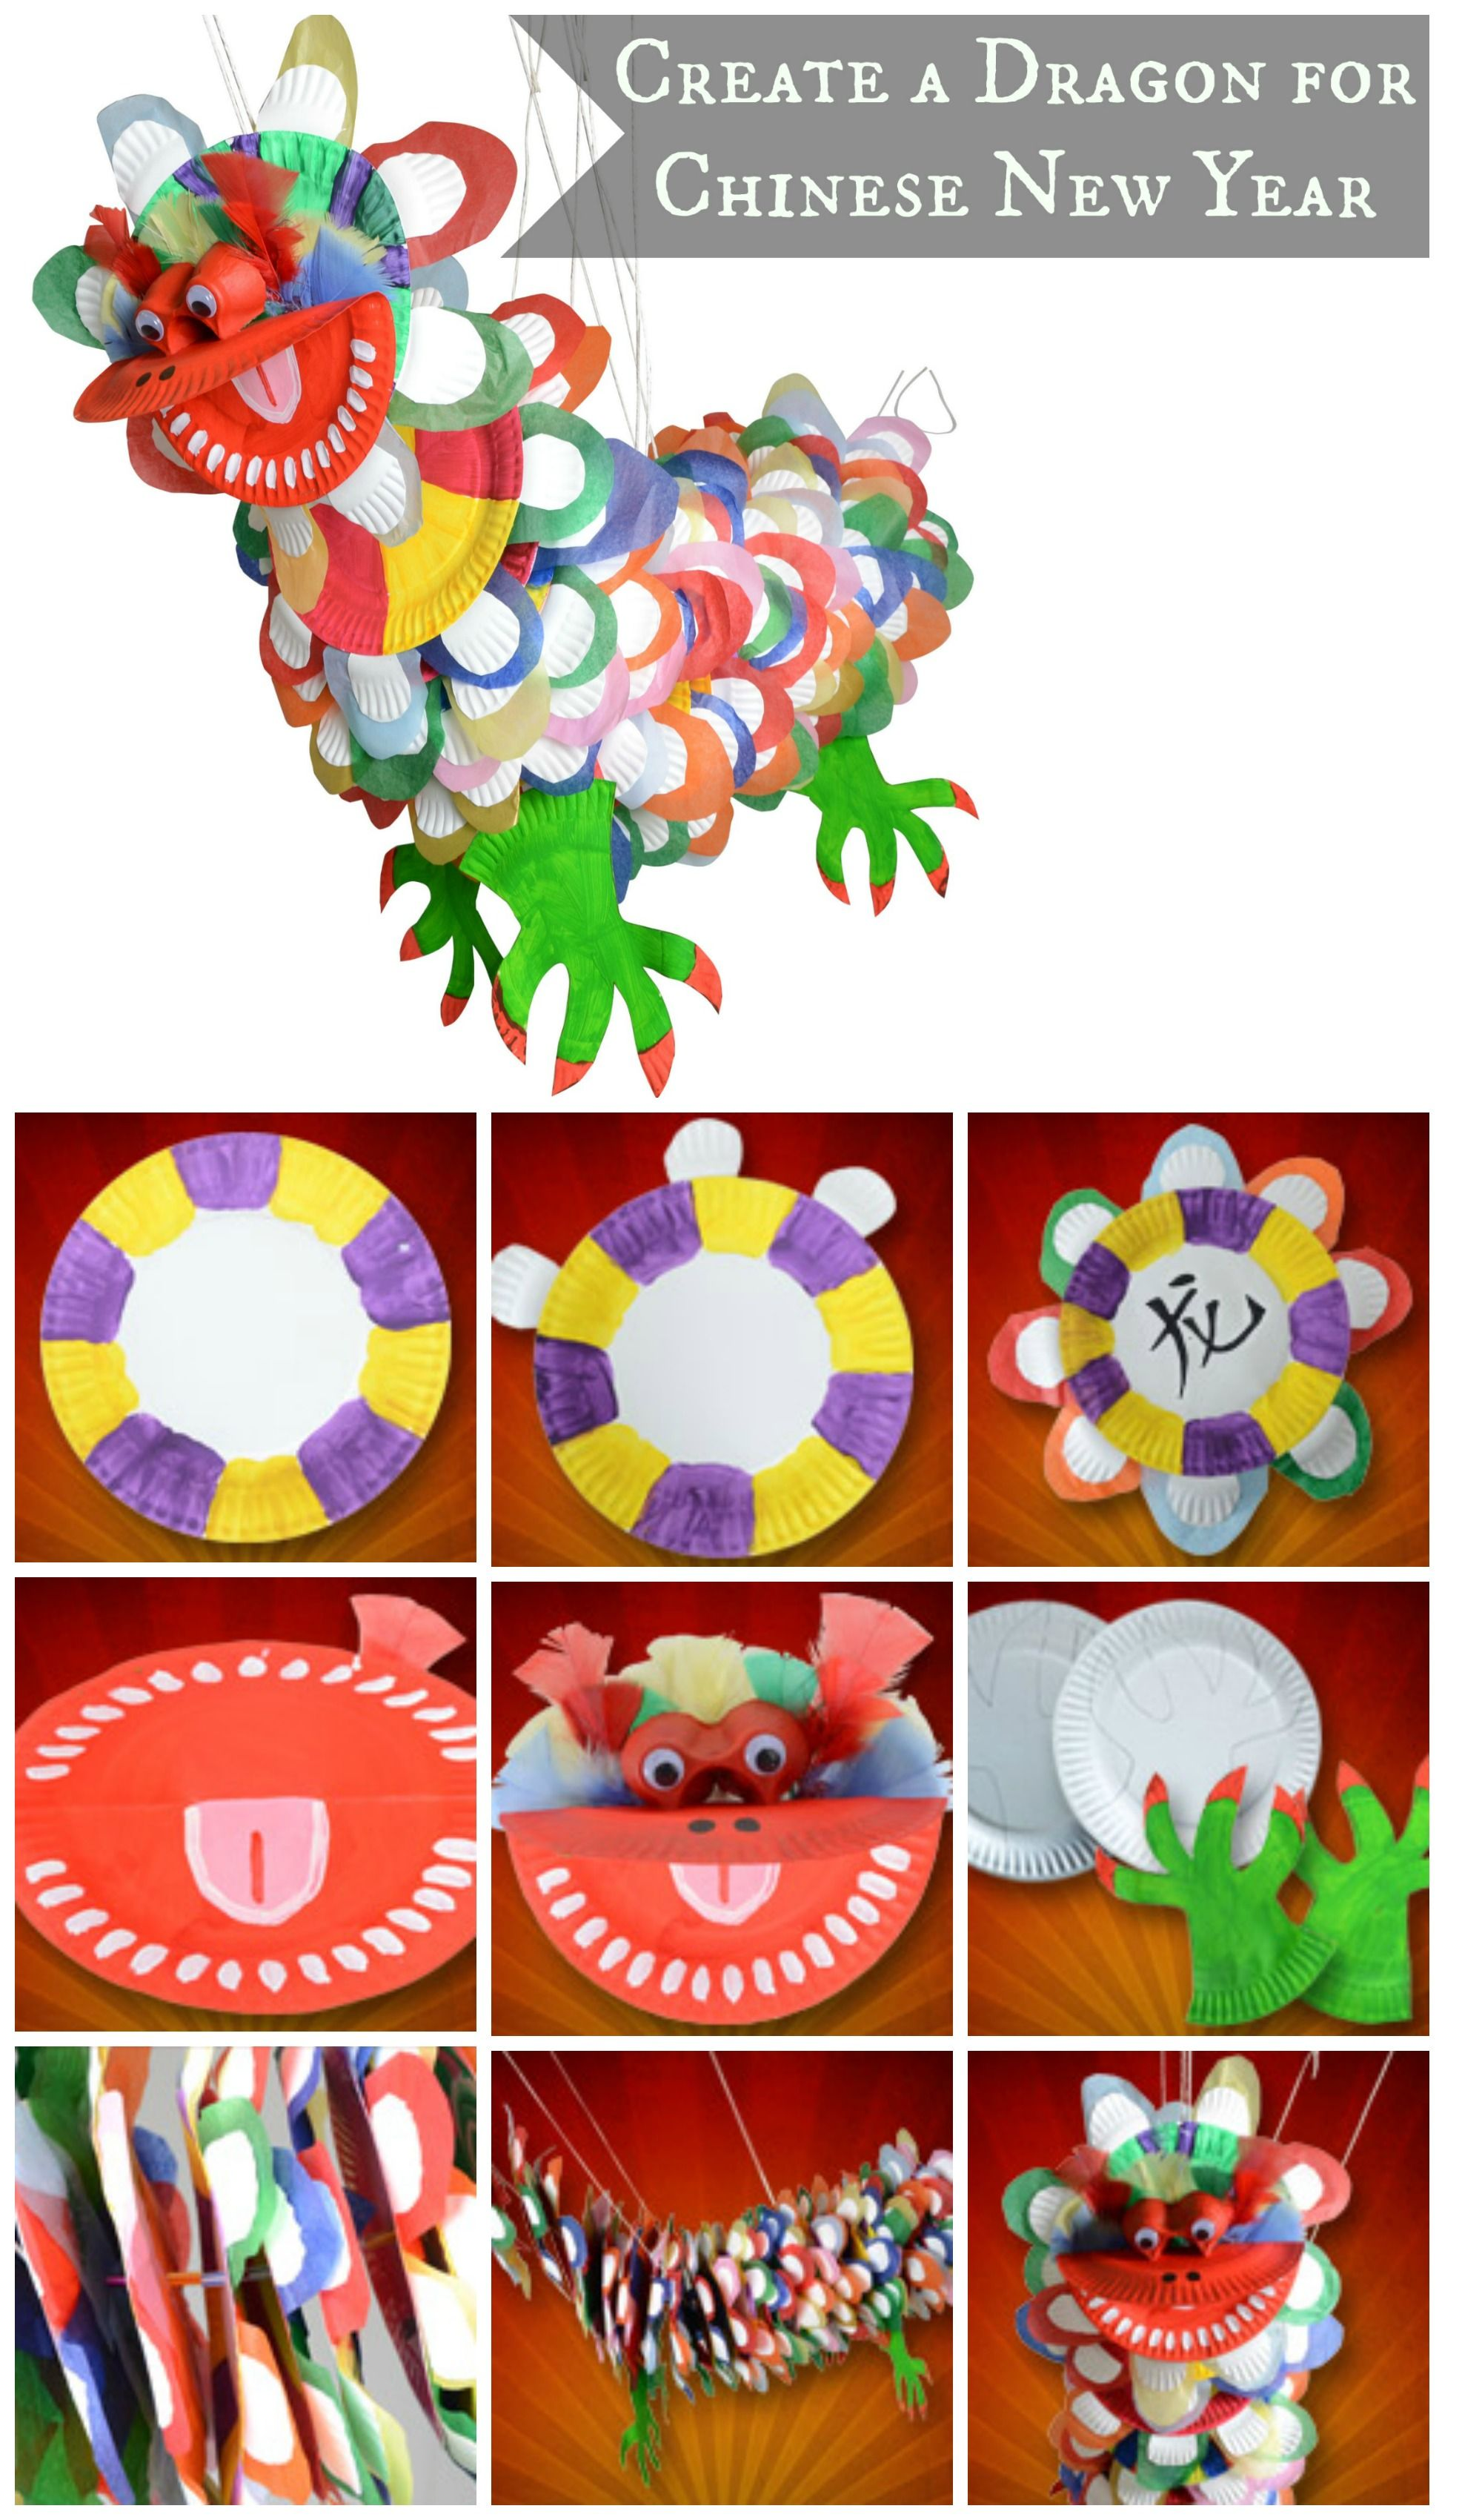 Get Children Involved In Creating A Dragon For Chinese New Year With Our Quick And Easy Guide Chinese New Year Crafts Chinese New Year Dragon Chinese Crafts